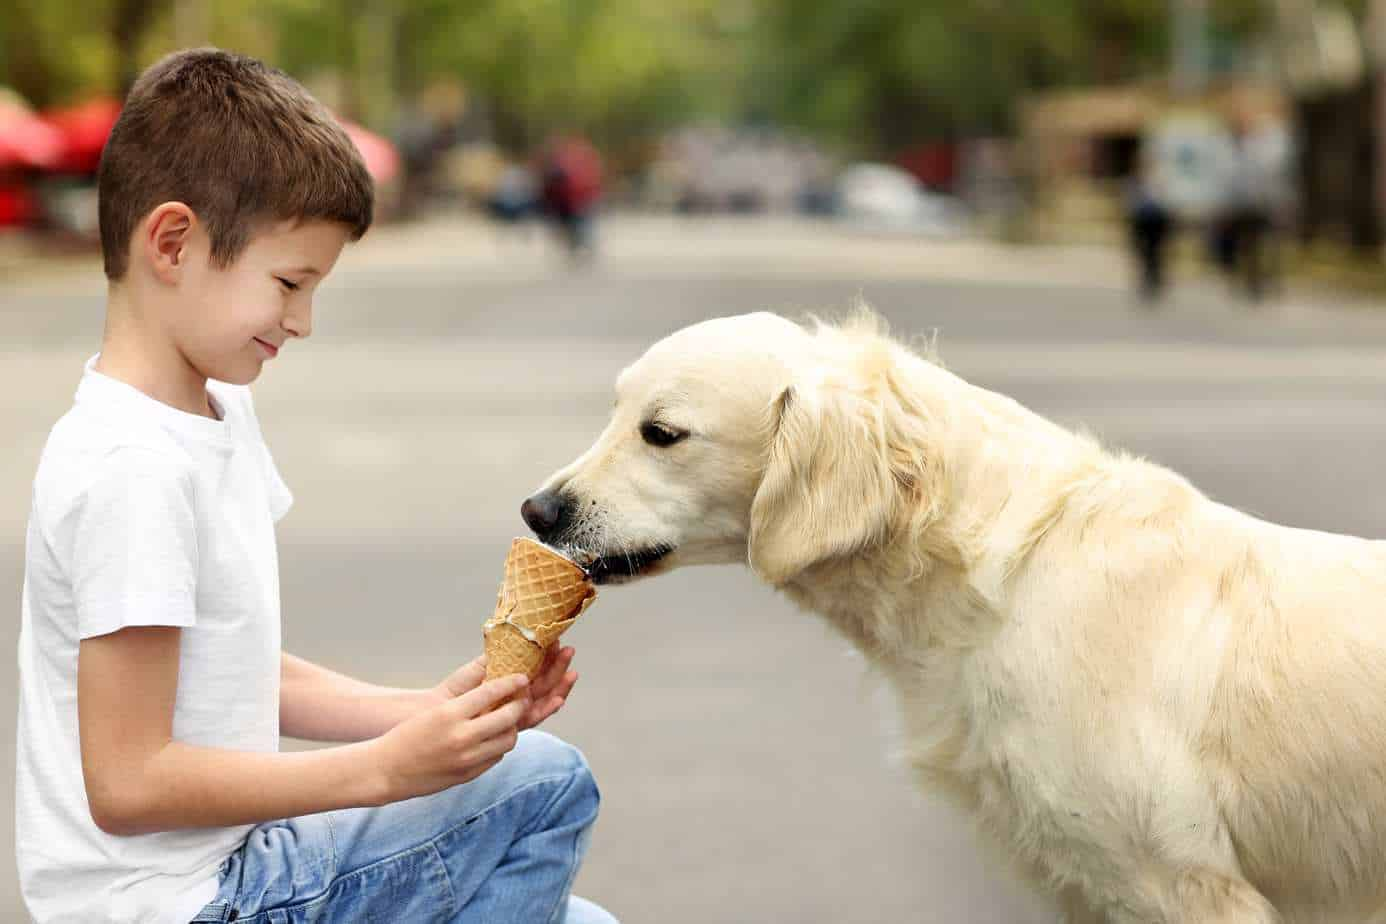 Boy feeds golden retriever ice cream. take some time to train your dog to be polite — or at least indifferent — to strangers.